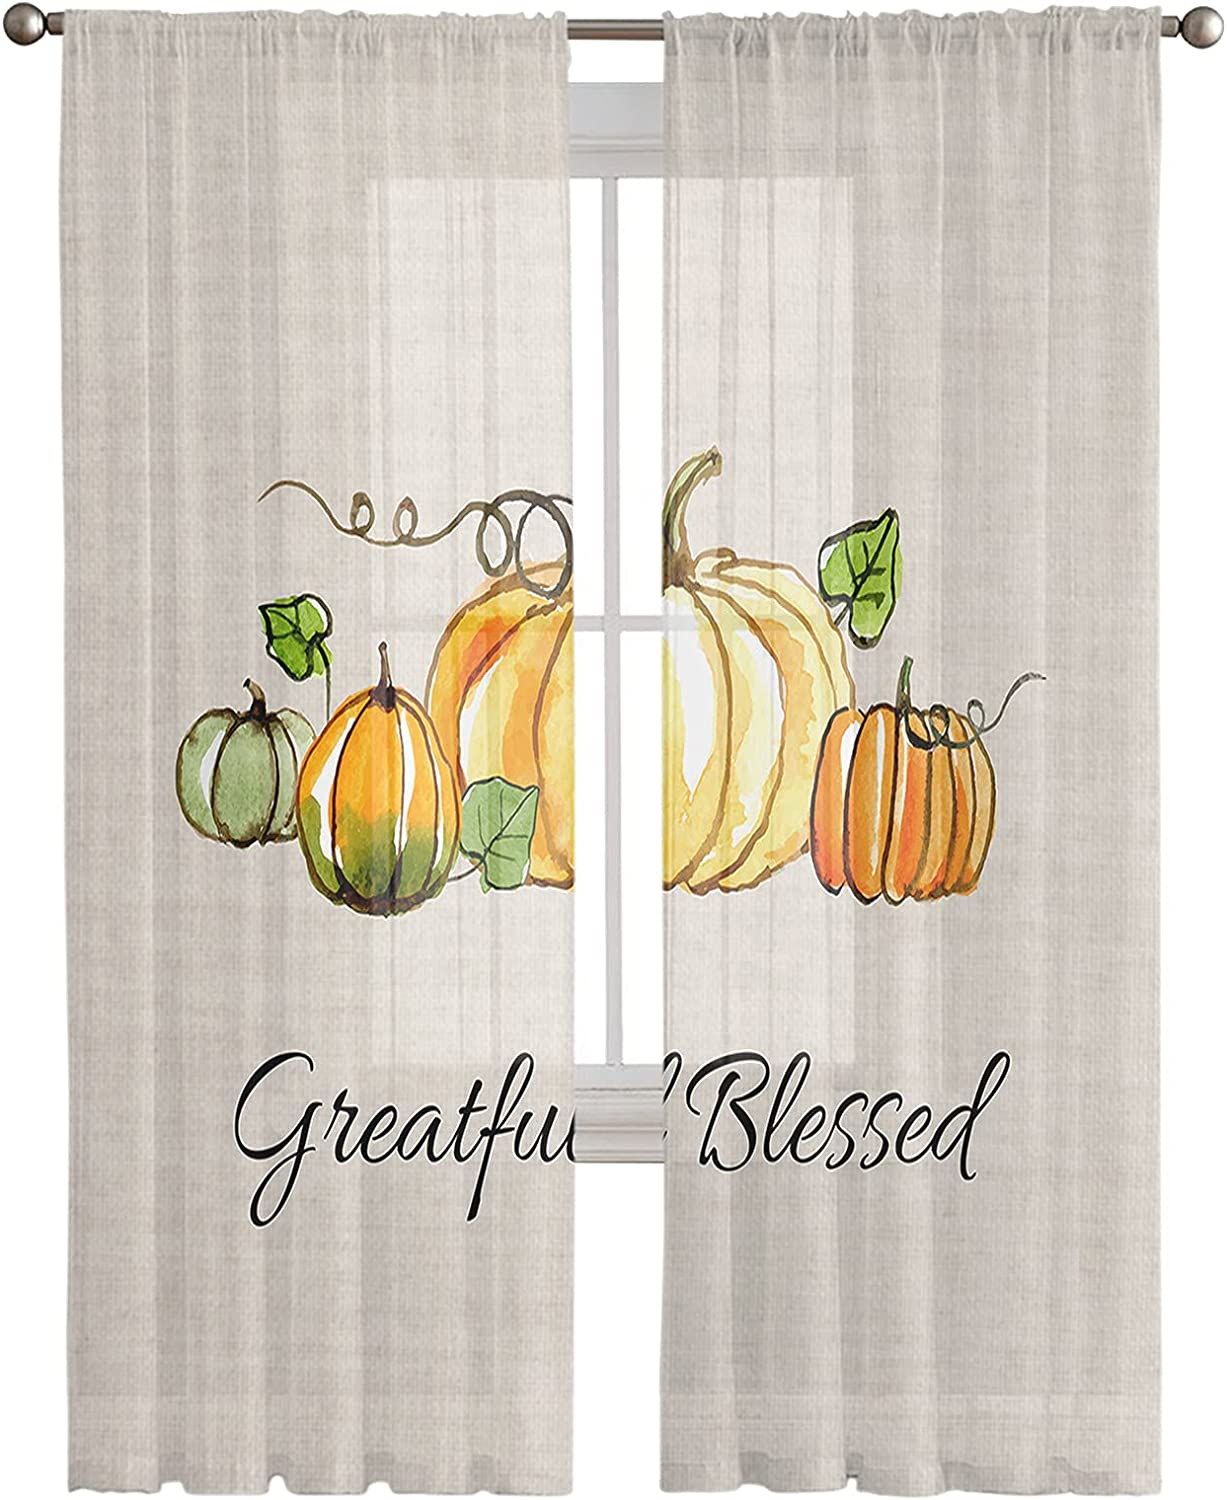 Complete Free Sacramento Mall Shipping Sheer Window Curtains 2 Panels Thanksgiving Lenth inches Pum 108